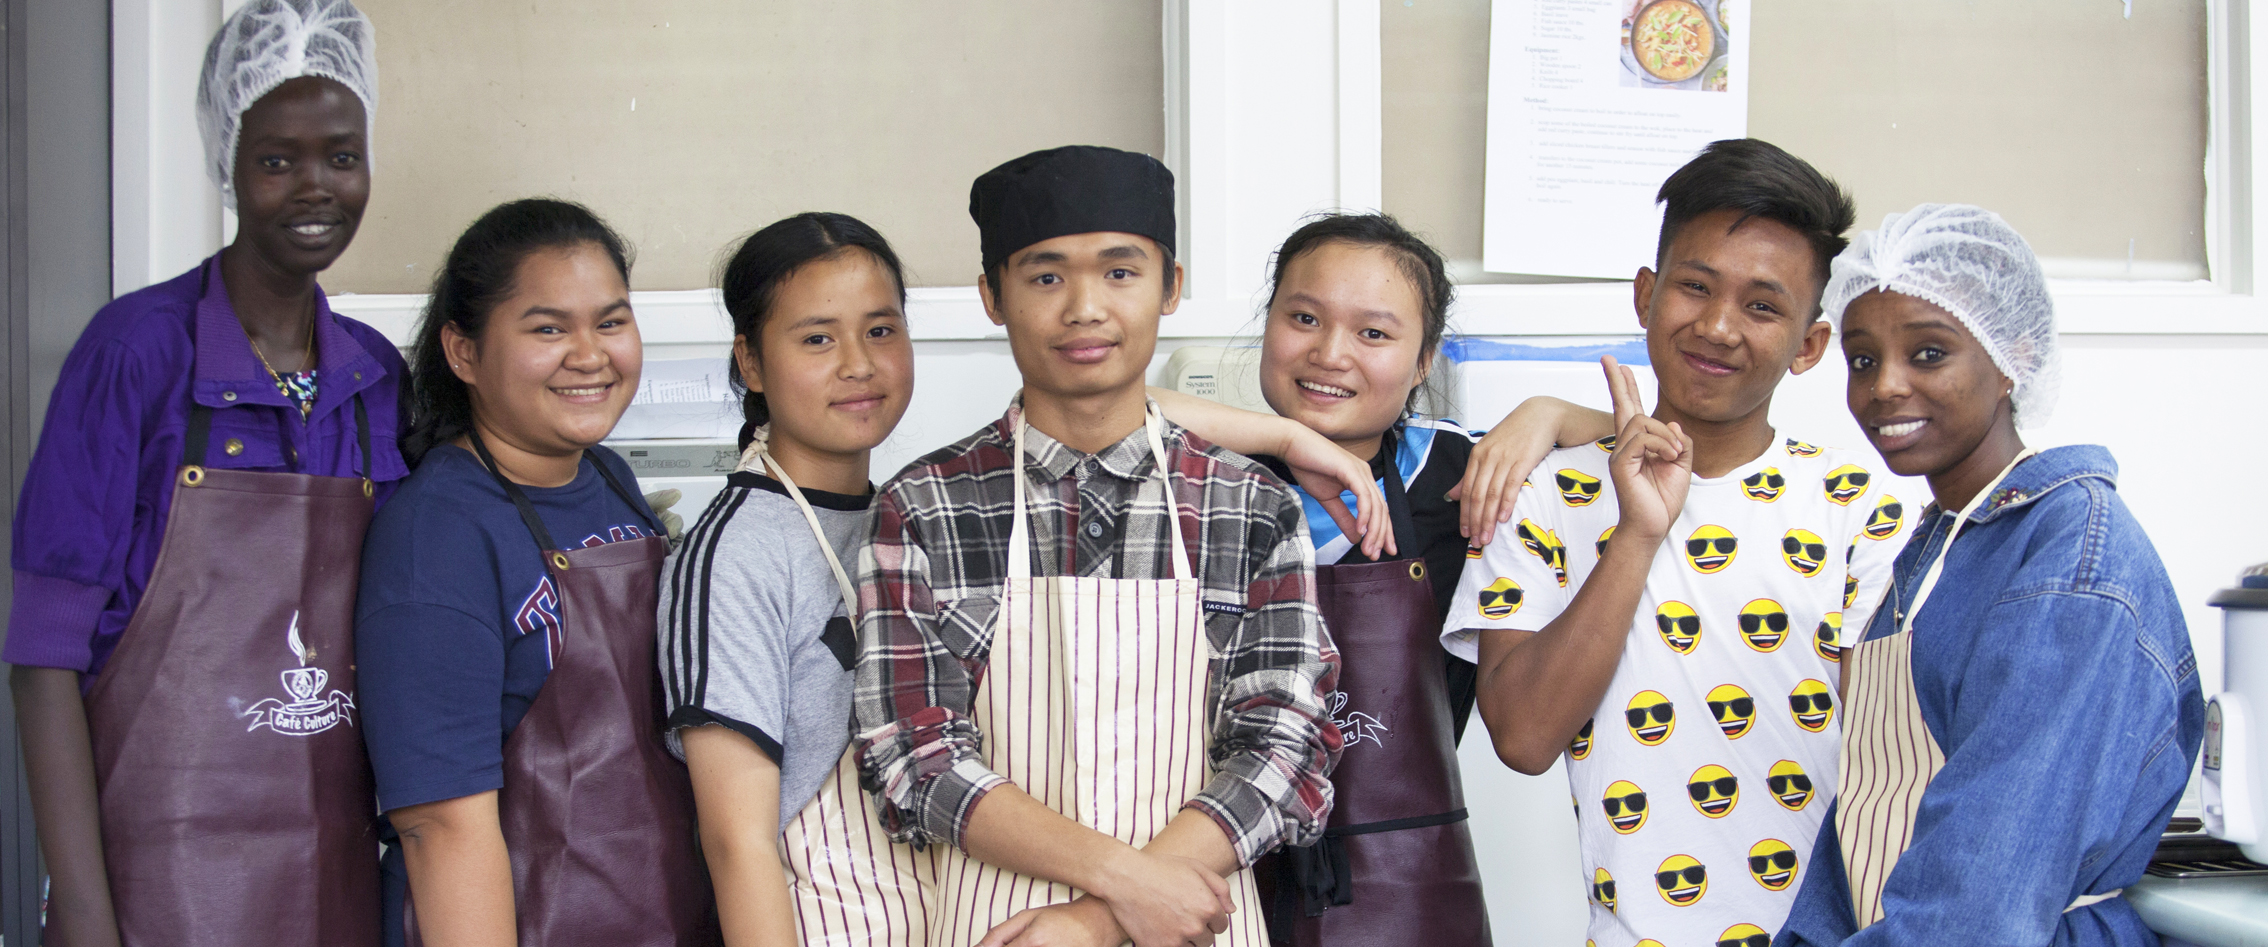 05-EAL-VCAL-cooking